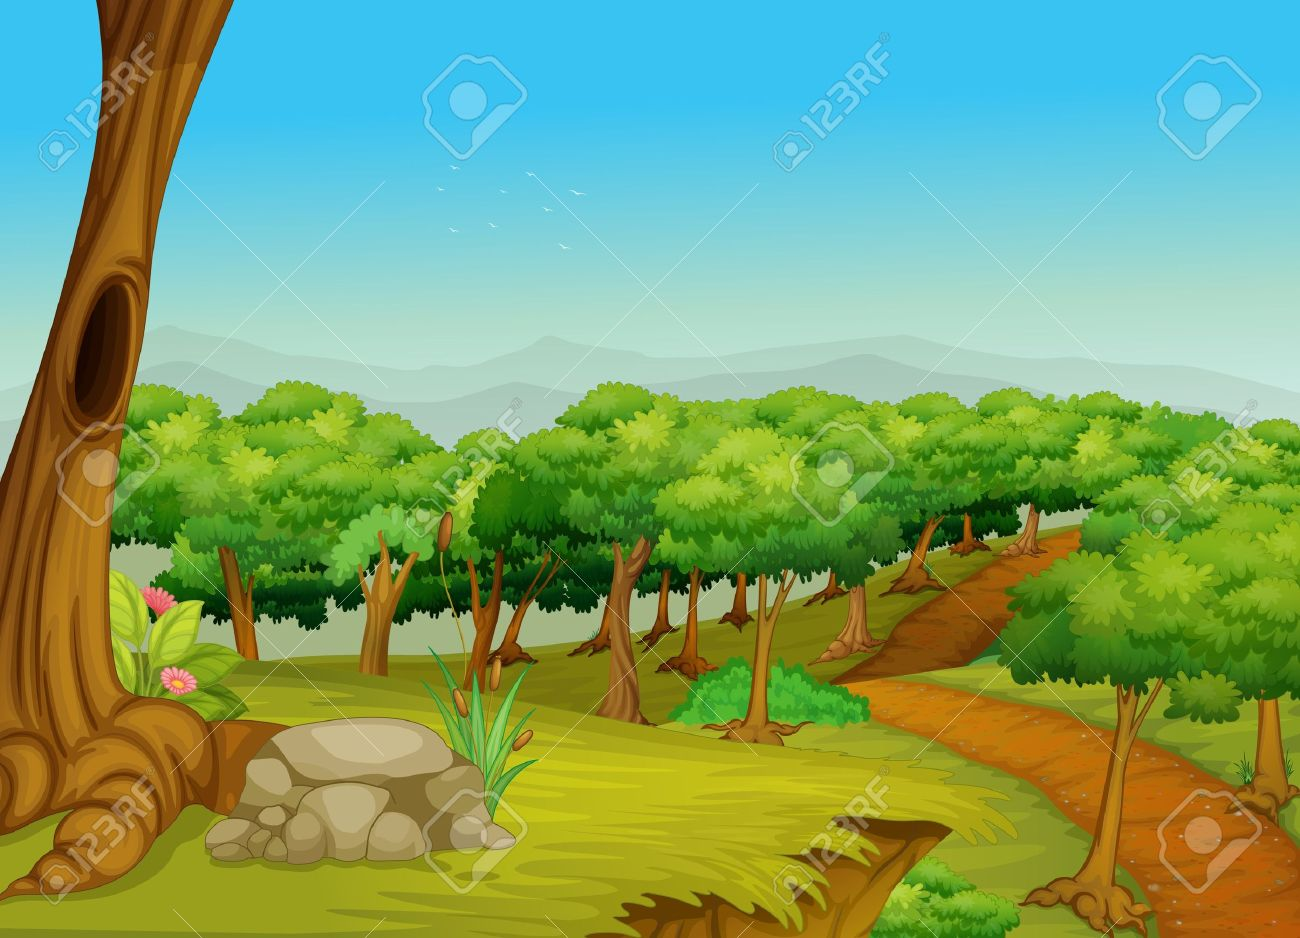 Illustration of a dirt path in the forest Stock Vector - 13376855